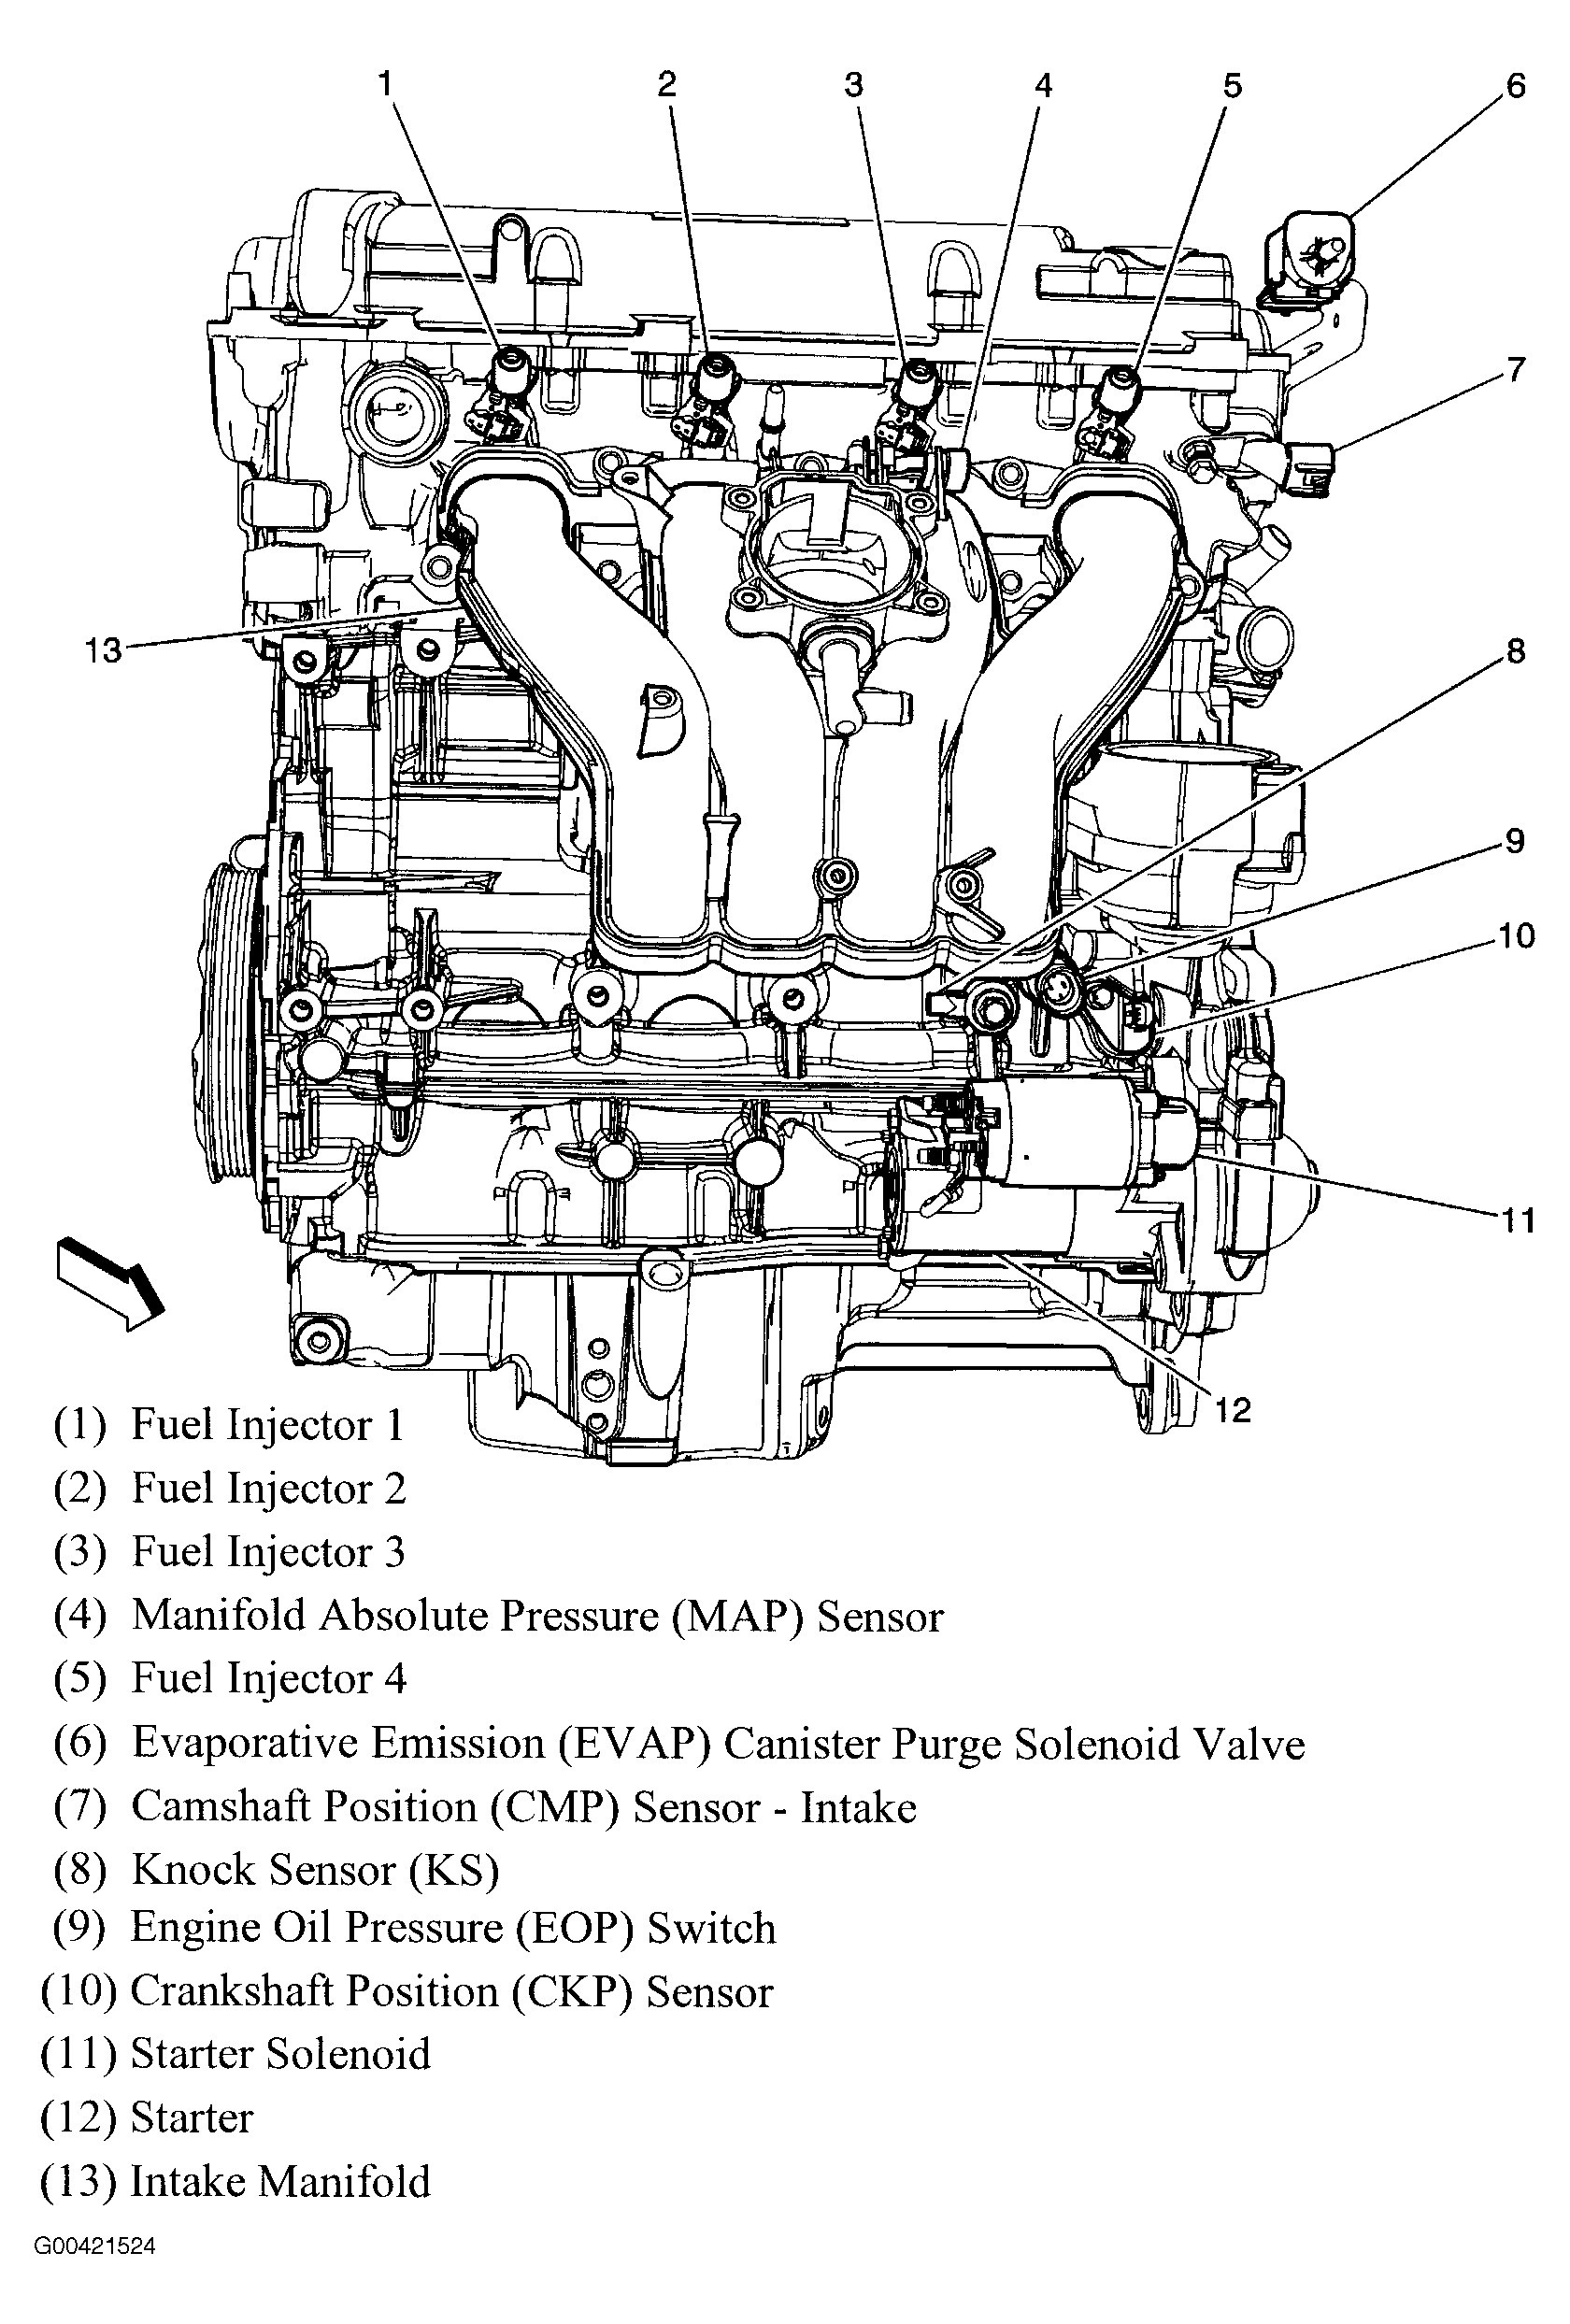 hight resolution of 2008 chevy impala engine diagram wiring diagram datasource